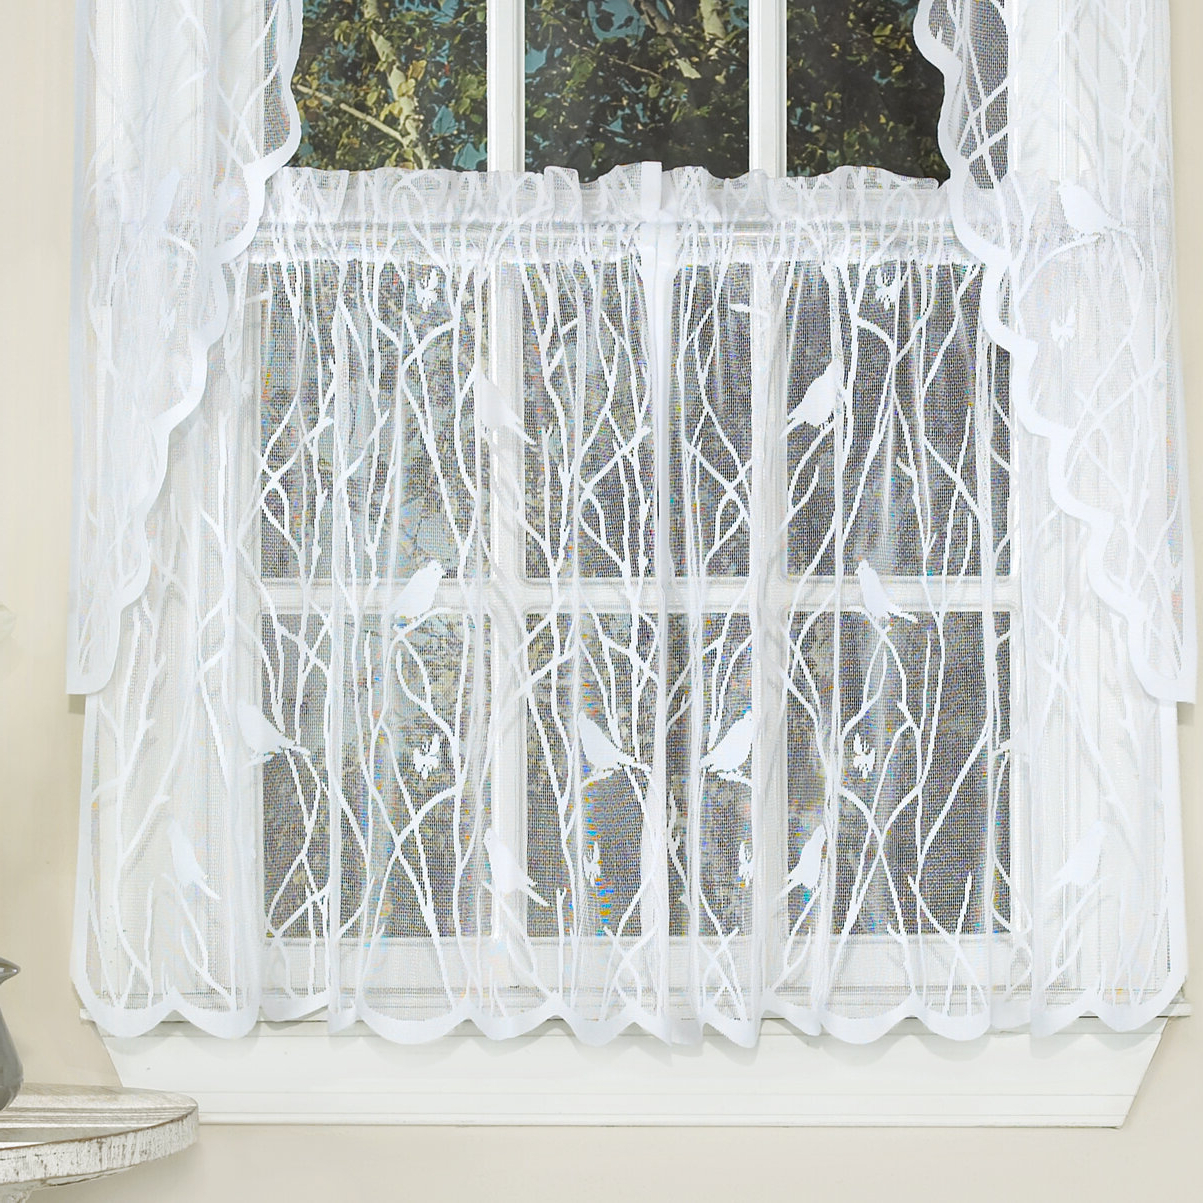 Wayfair With Trendy Marine Life Motif Knitted Lace Window Curtain Pieces (View 12 of 20)